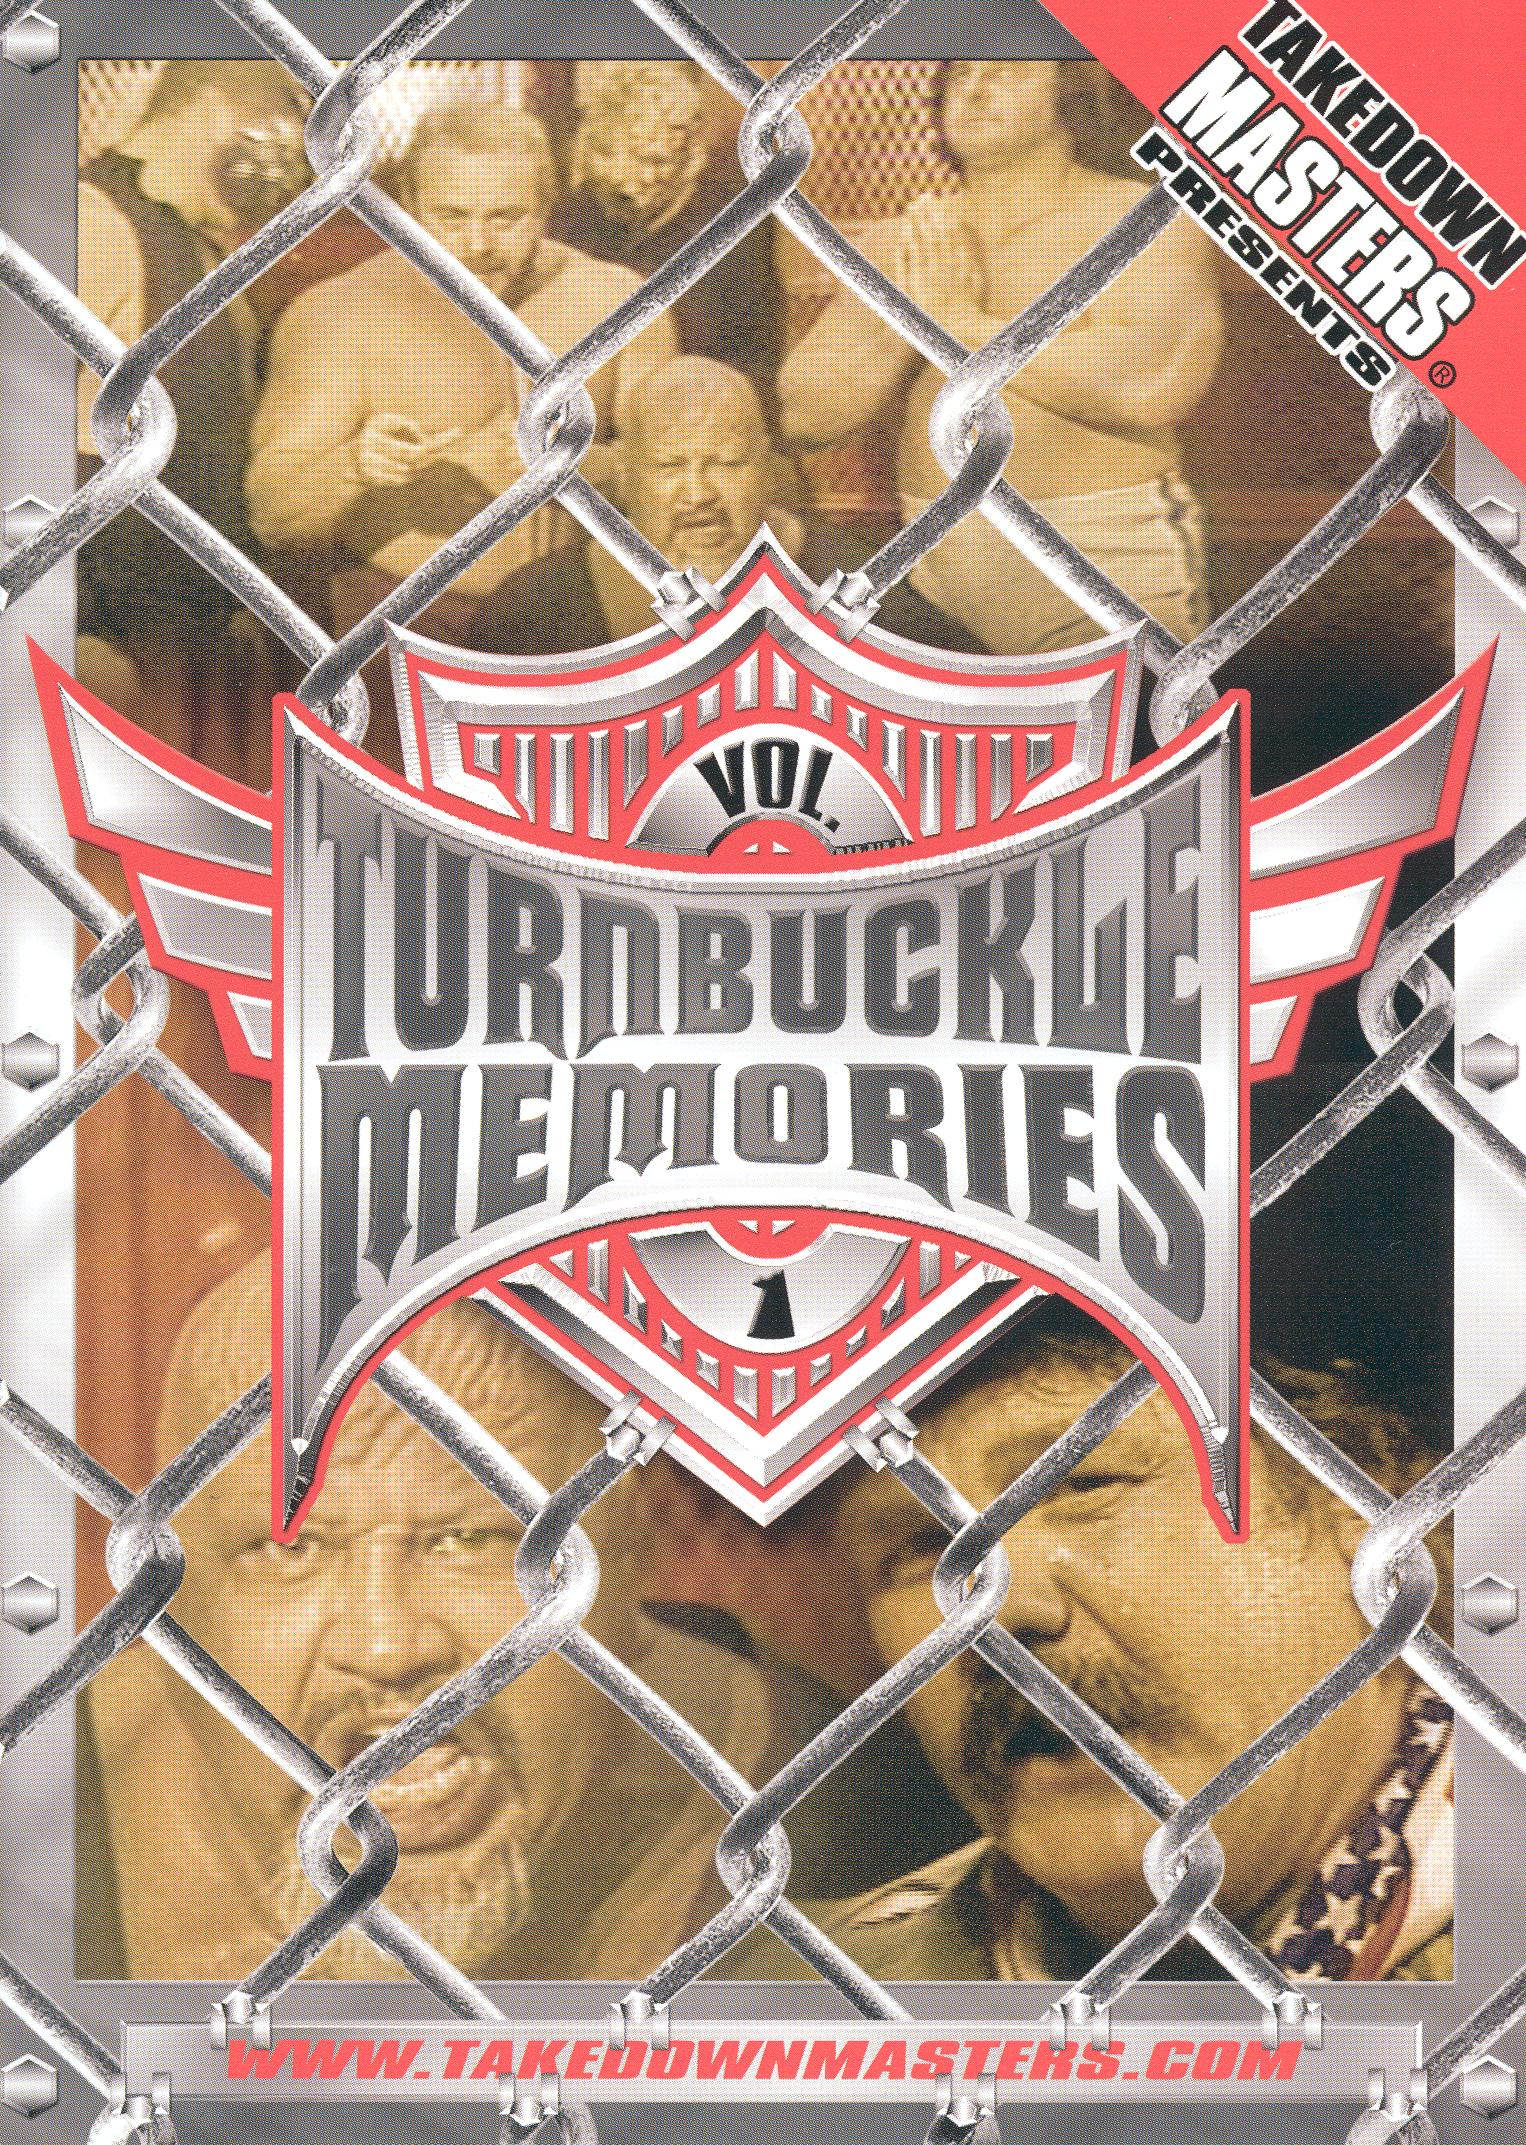 Takedown Masters: Turnbuckle Memories, Vol. 1